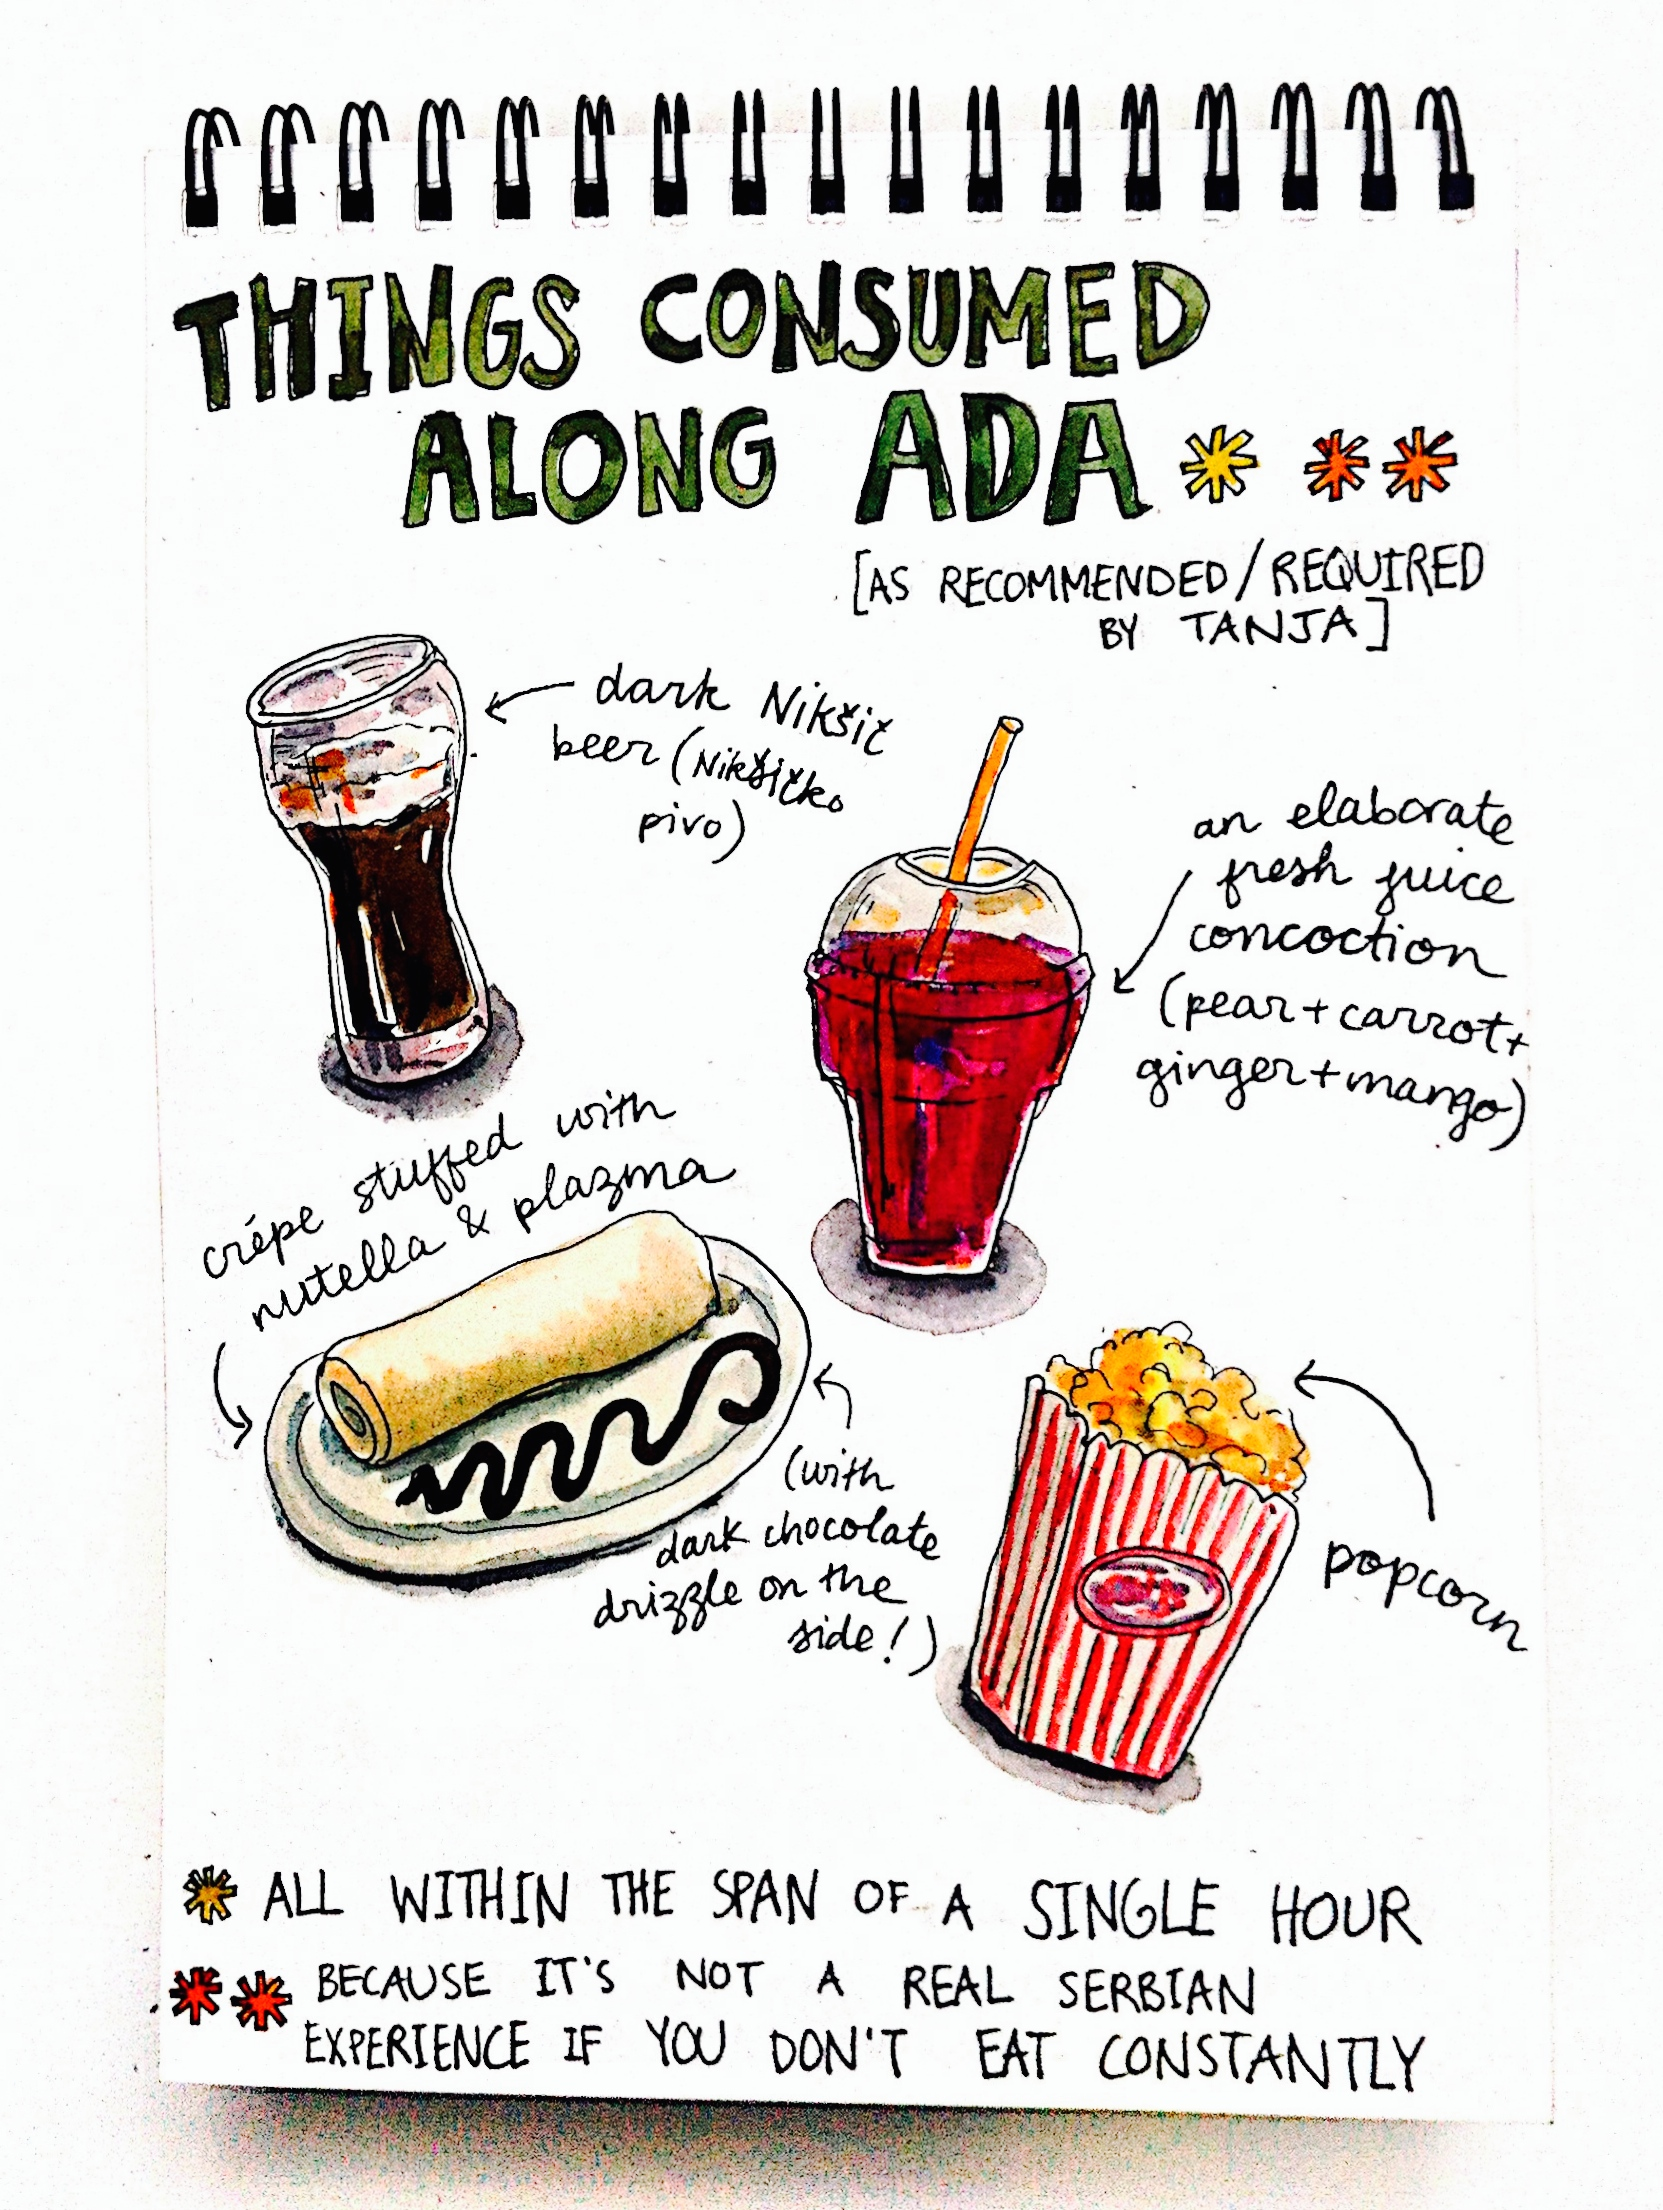 05things consumed along ada